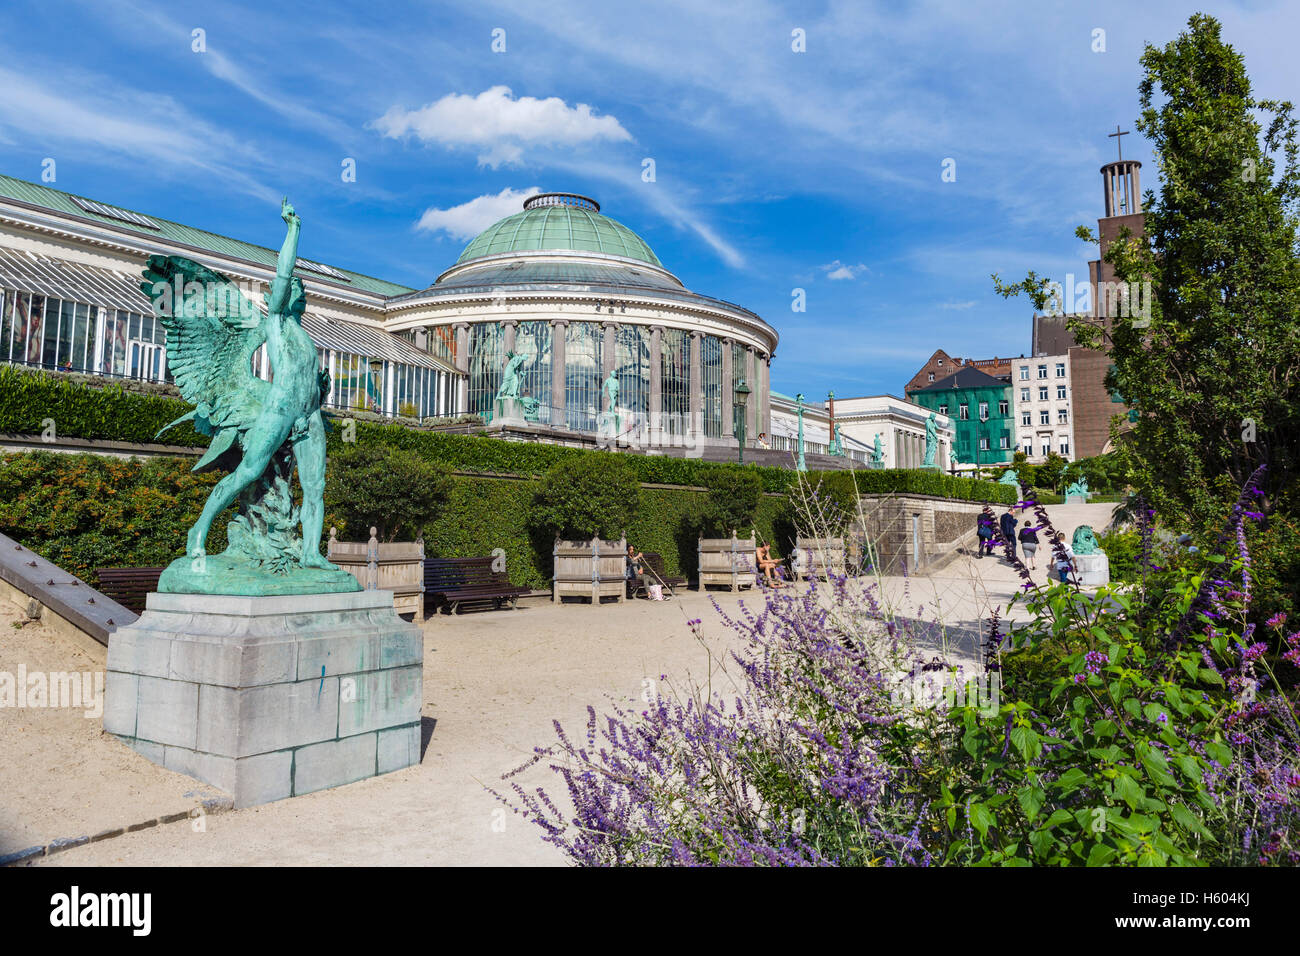 Le Botanique greenhouse, formerly housing the old Botanical Gardens, Brussels, Belgium. - Stock Image